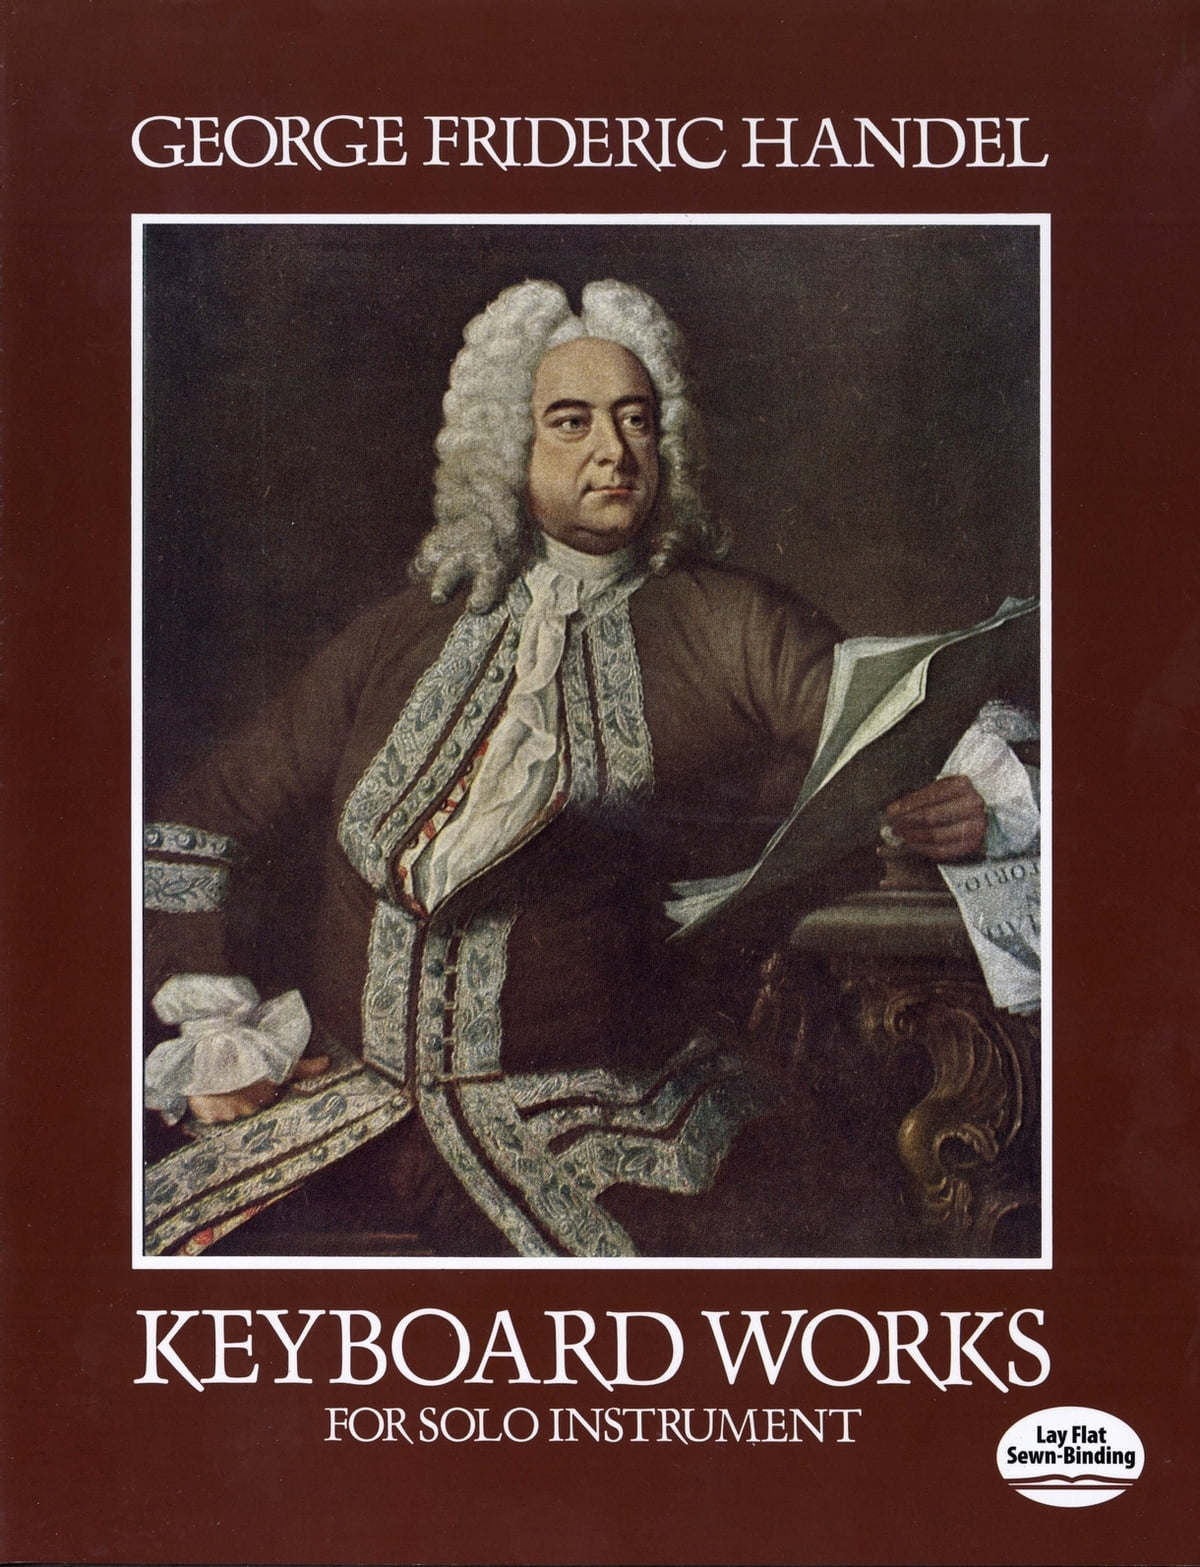 """george frederic handel essay George frideric handel was the greatest composer essay examples - frideric handel was the greatest composer during the baroque period, one of his famous works was """"julius caesar"""" the opera seria."""